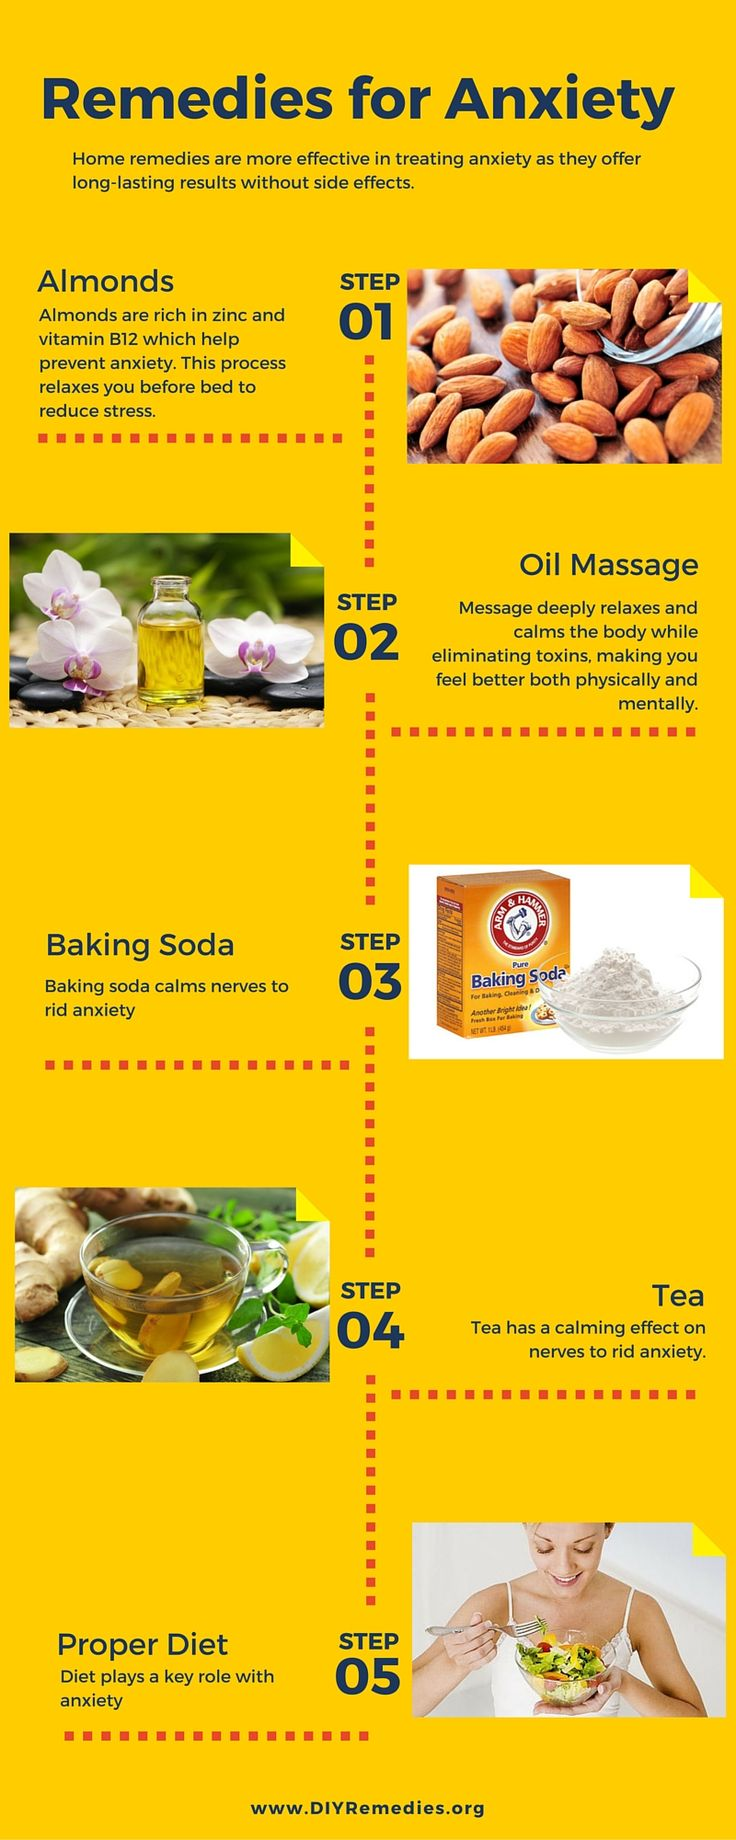 Home remedies are more effective in treating anxiety as they offer long-lasting results without side effects.